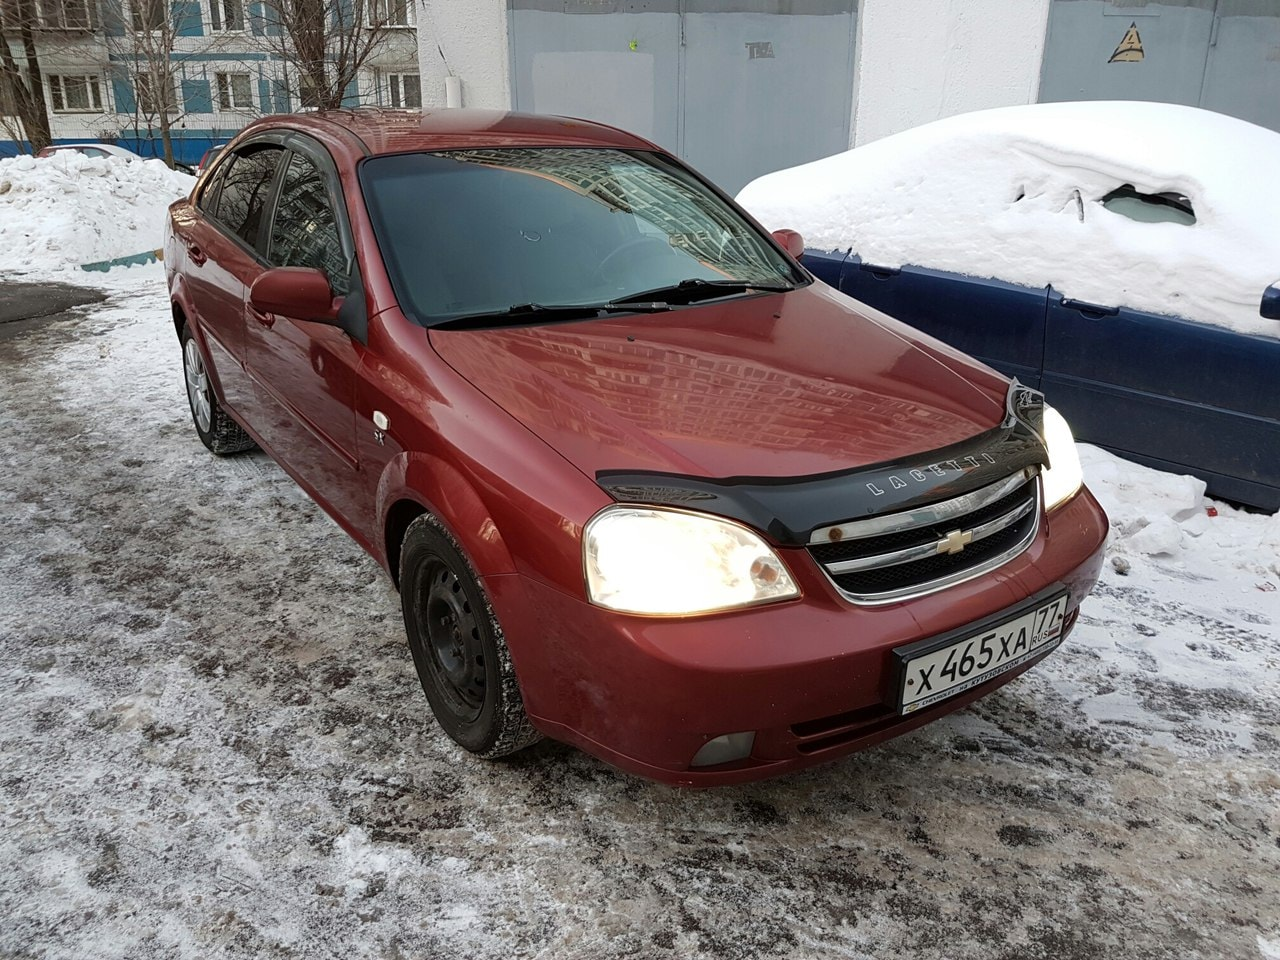 ВЫКУП CHEVROLET LACETTI 2004 Г. 1.6 АТ